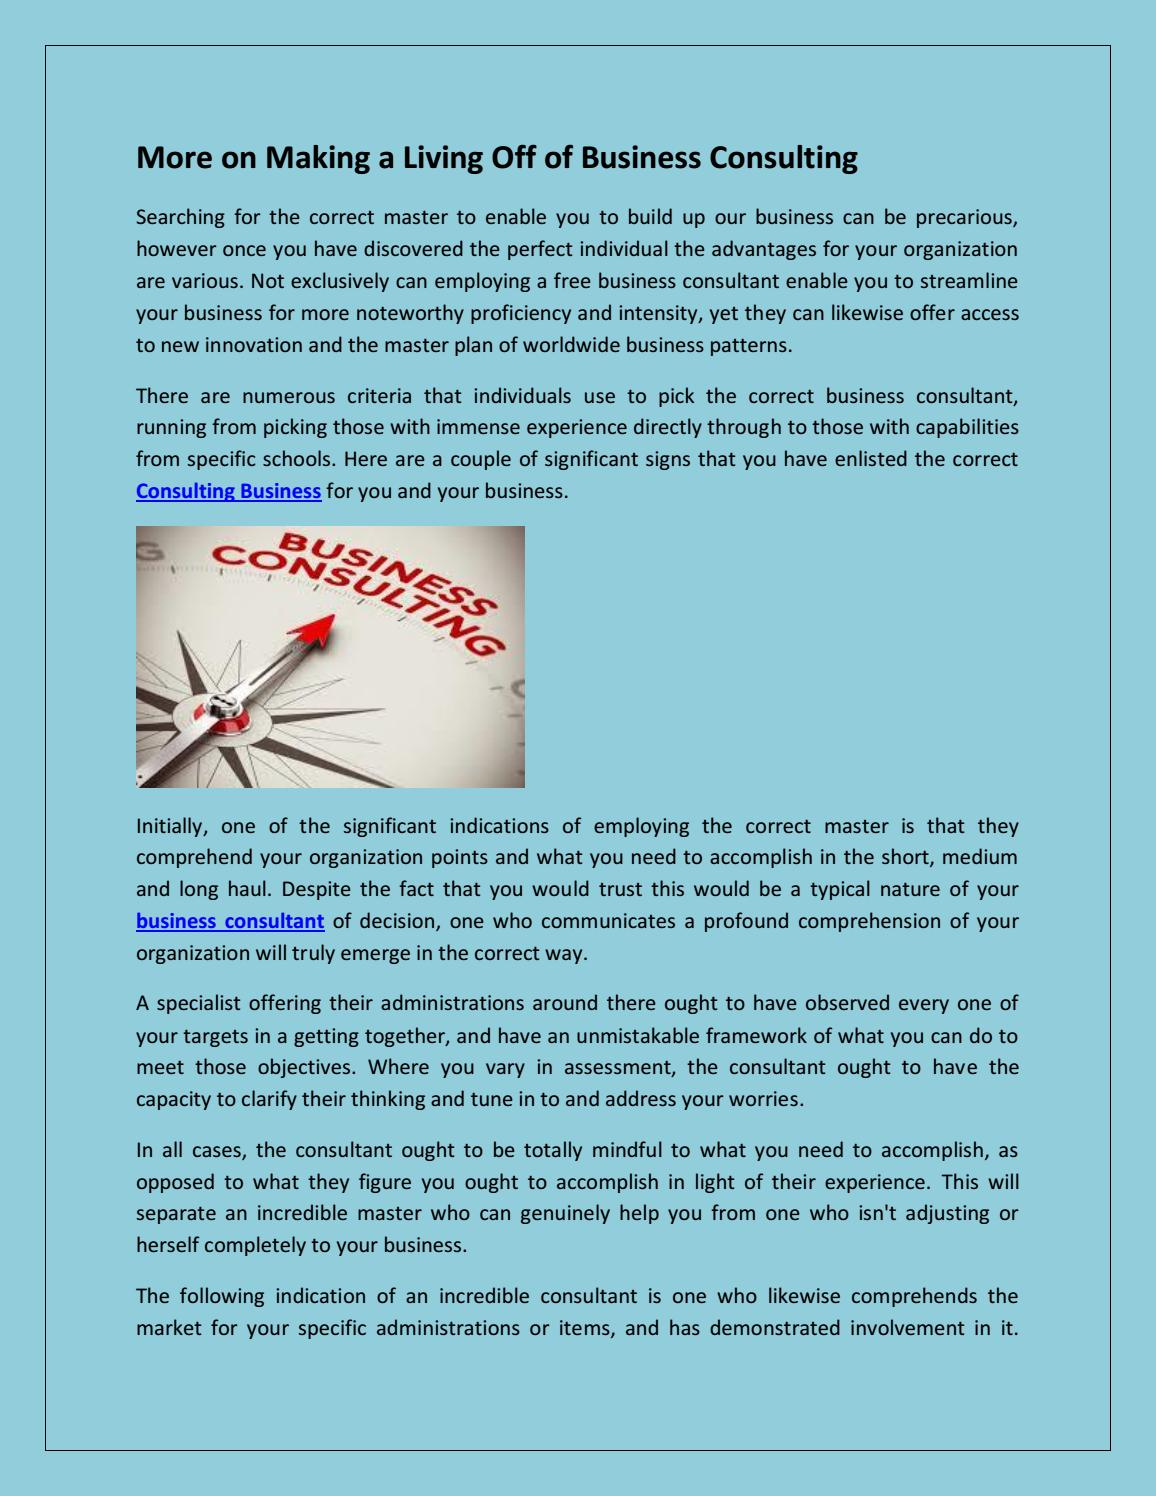 More On Making A Living Off Of Business Consulting By Imaginerya  Issuu